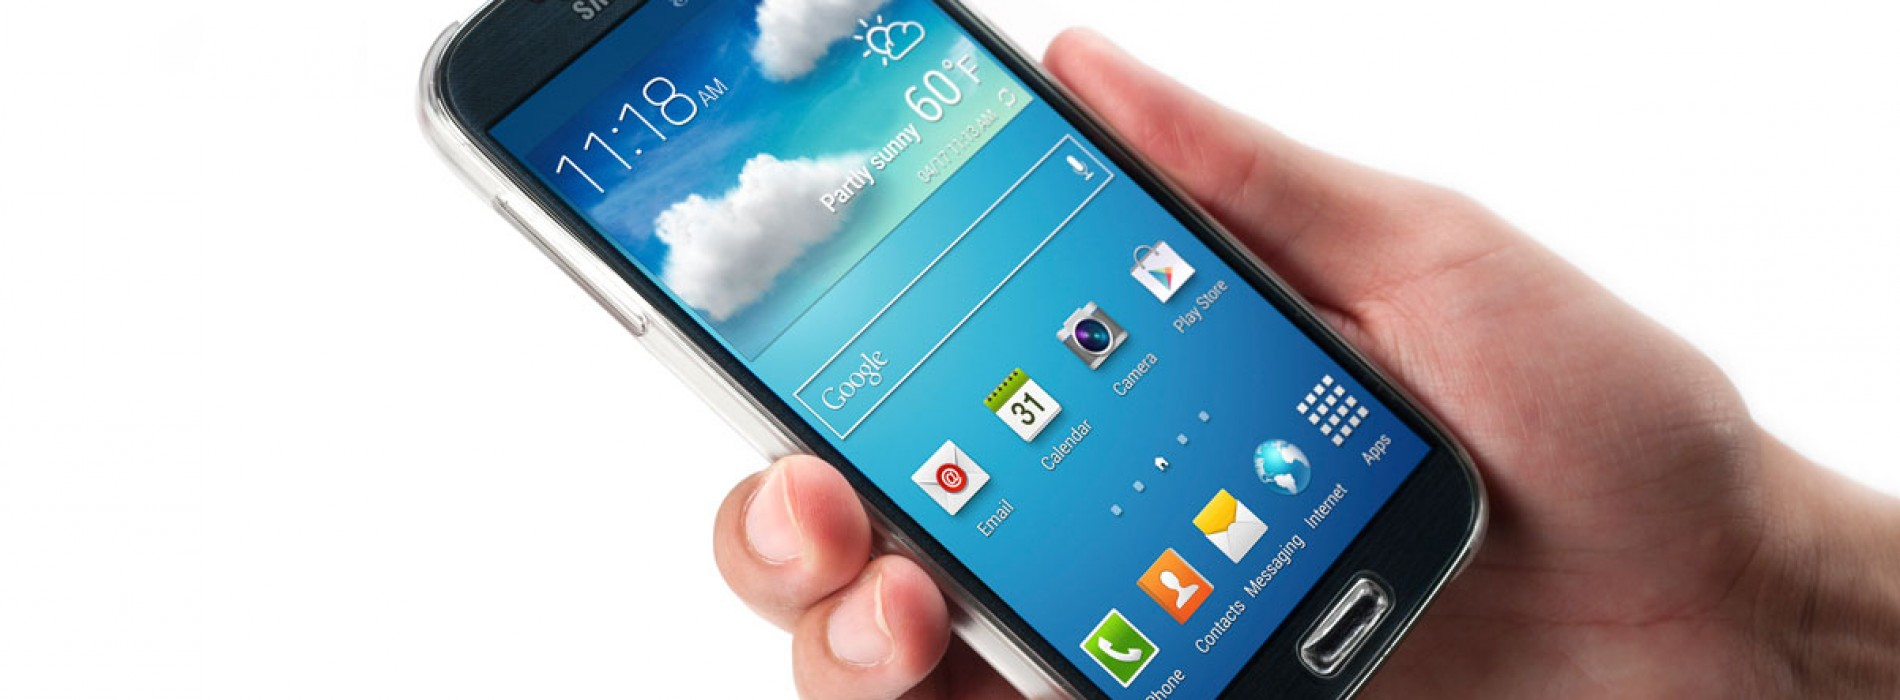 Alleged Galaxy S5 specs found on benchmark site